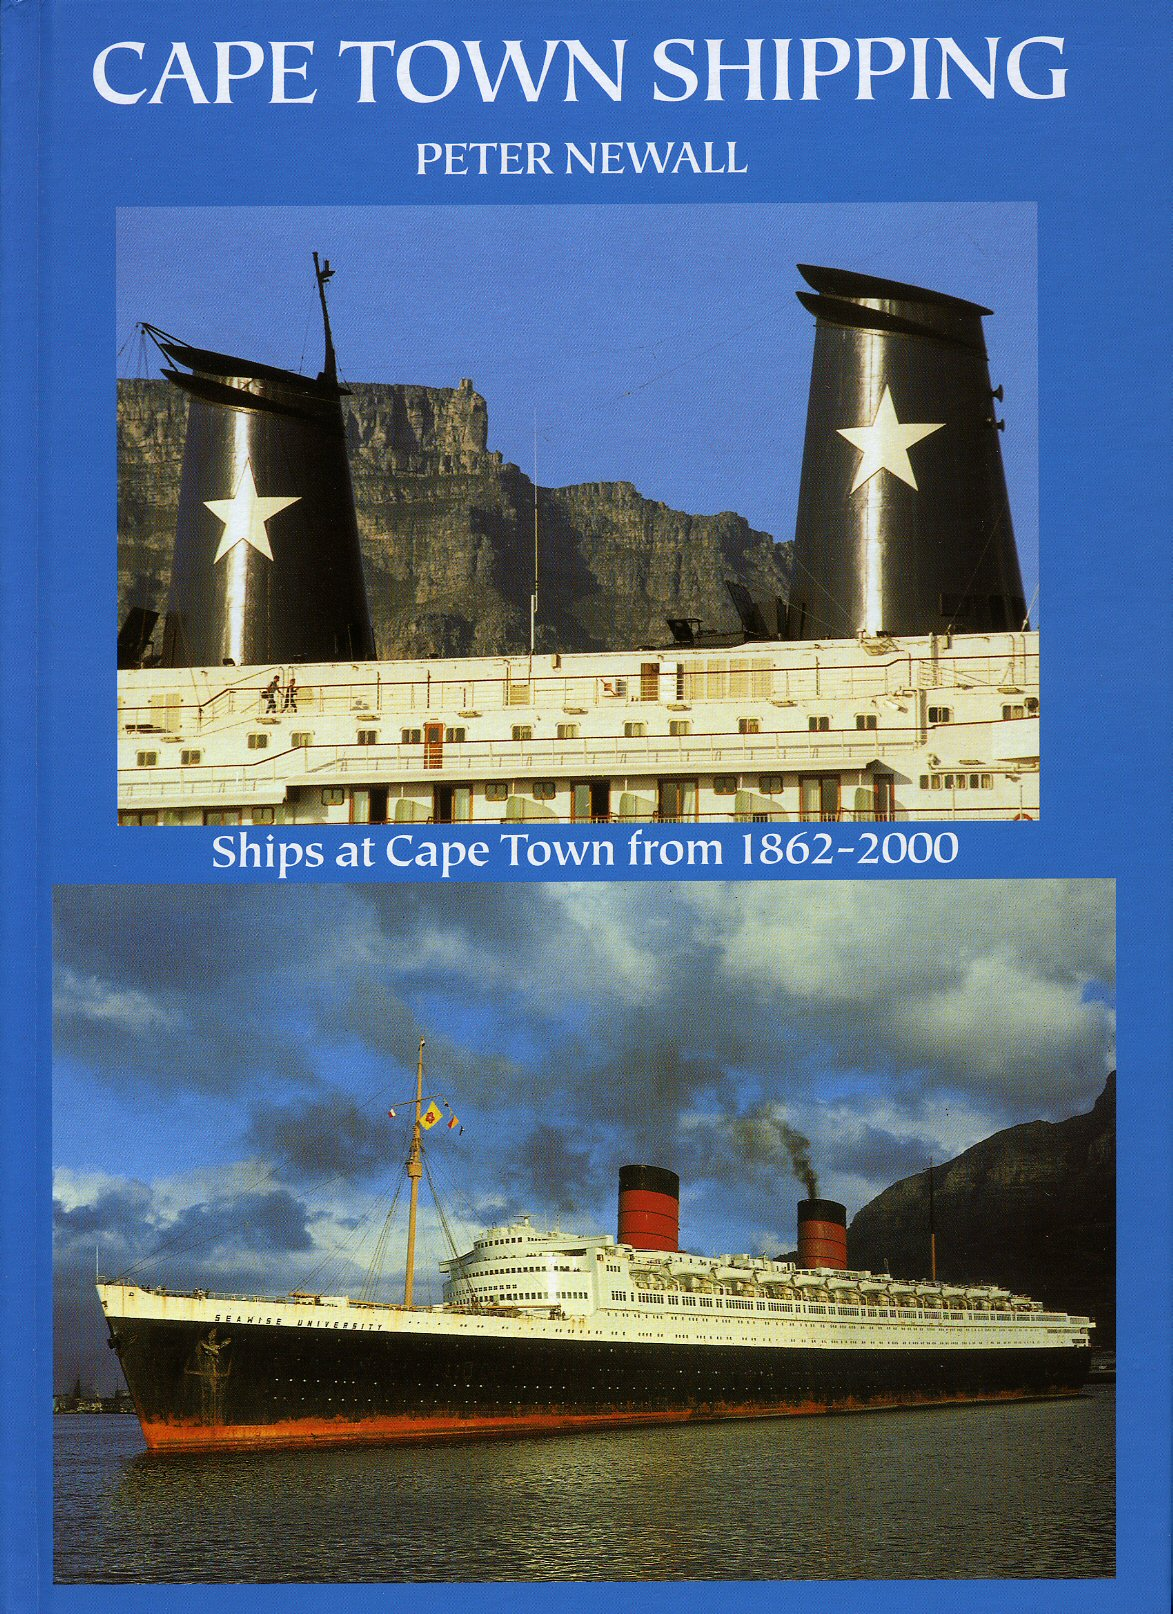 NEWALL, PETER - Cape Town Shipping: Ships at Cape Town From 1862-2000 [Signed]